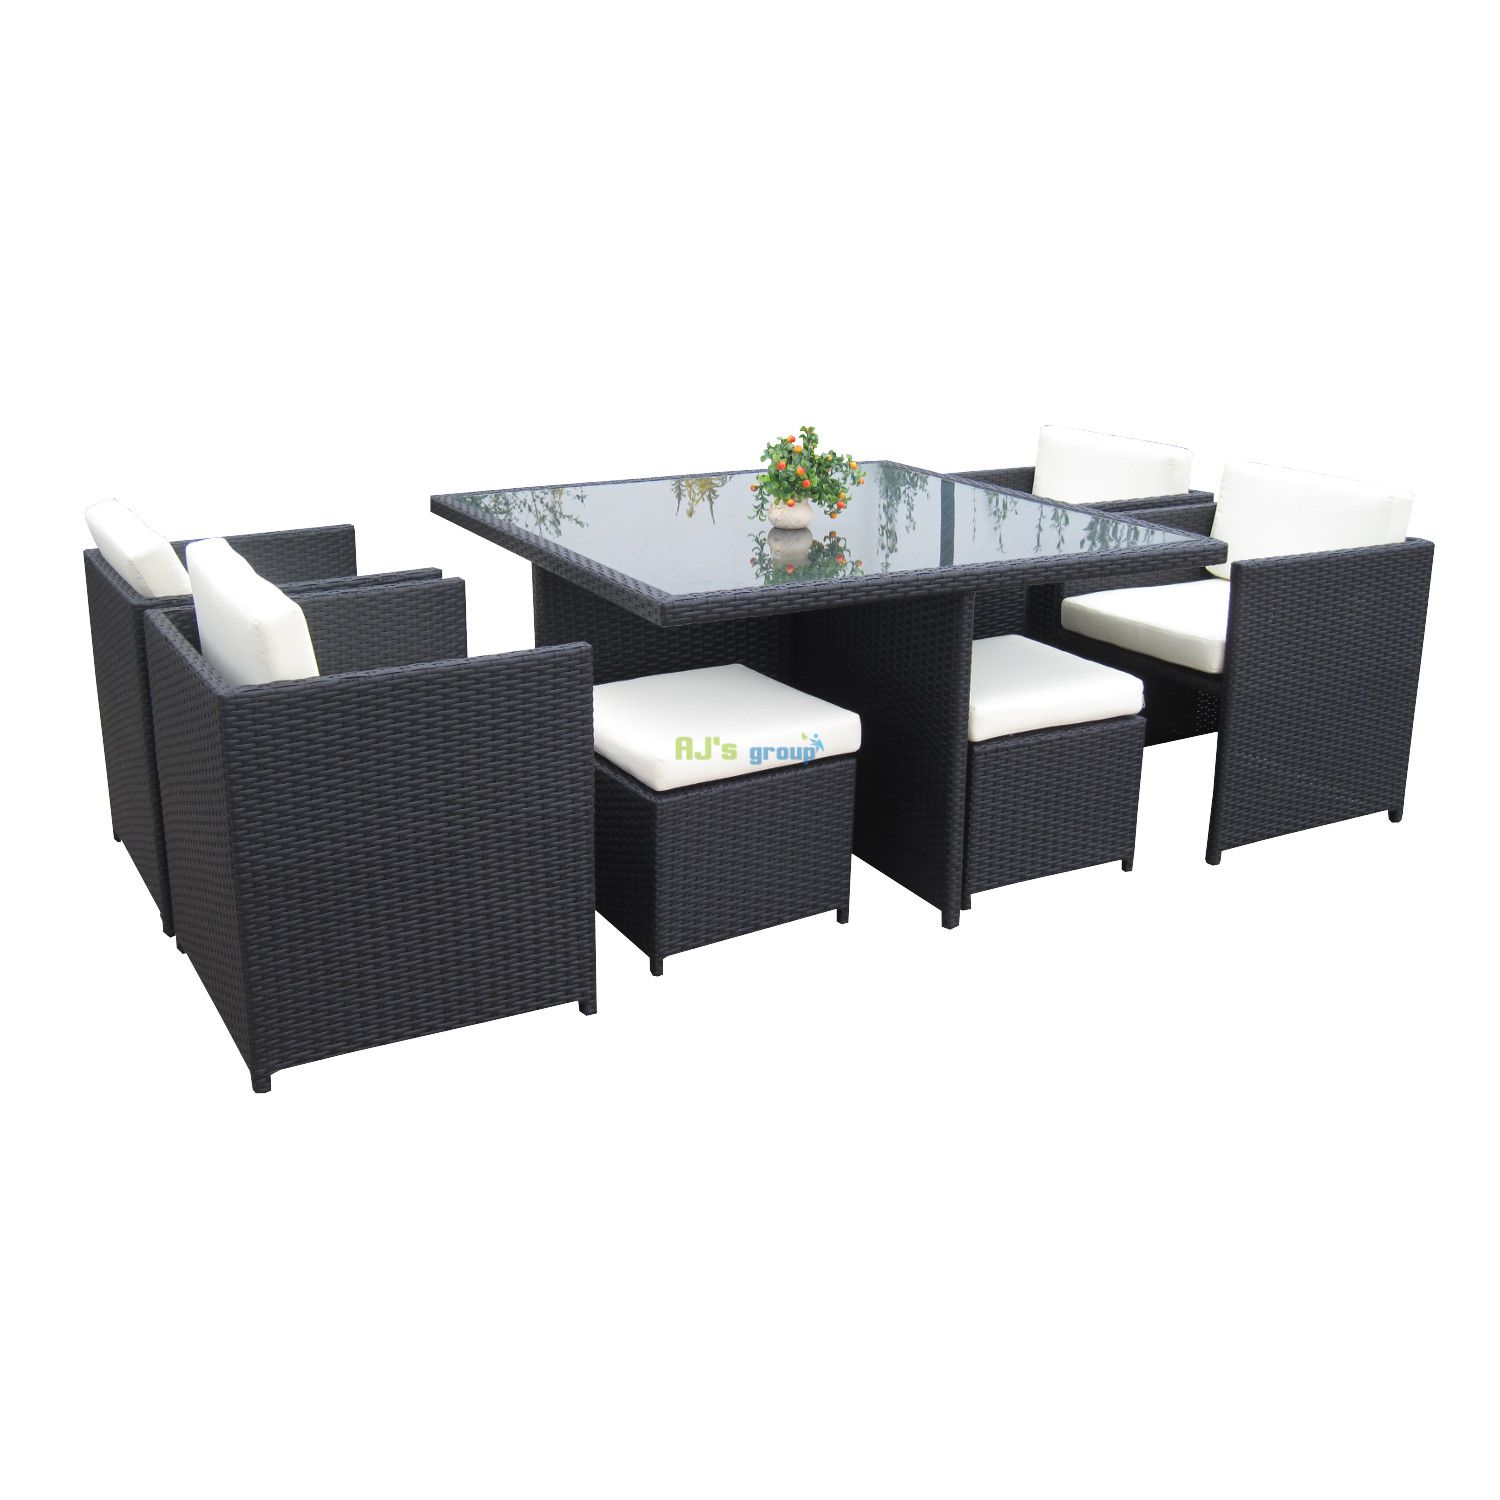 poly rotan dining set san jose loungeset tuinset tuinmeubelen lounge. Black Bedroom Furniture Sets. Home Design Ideas